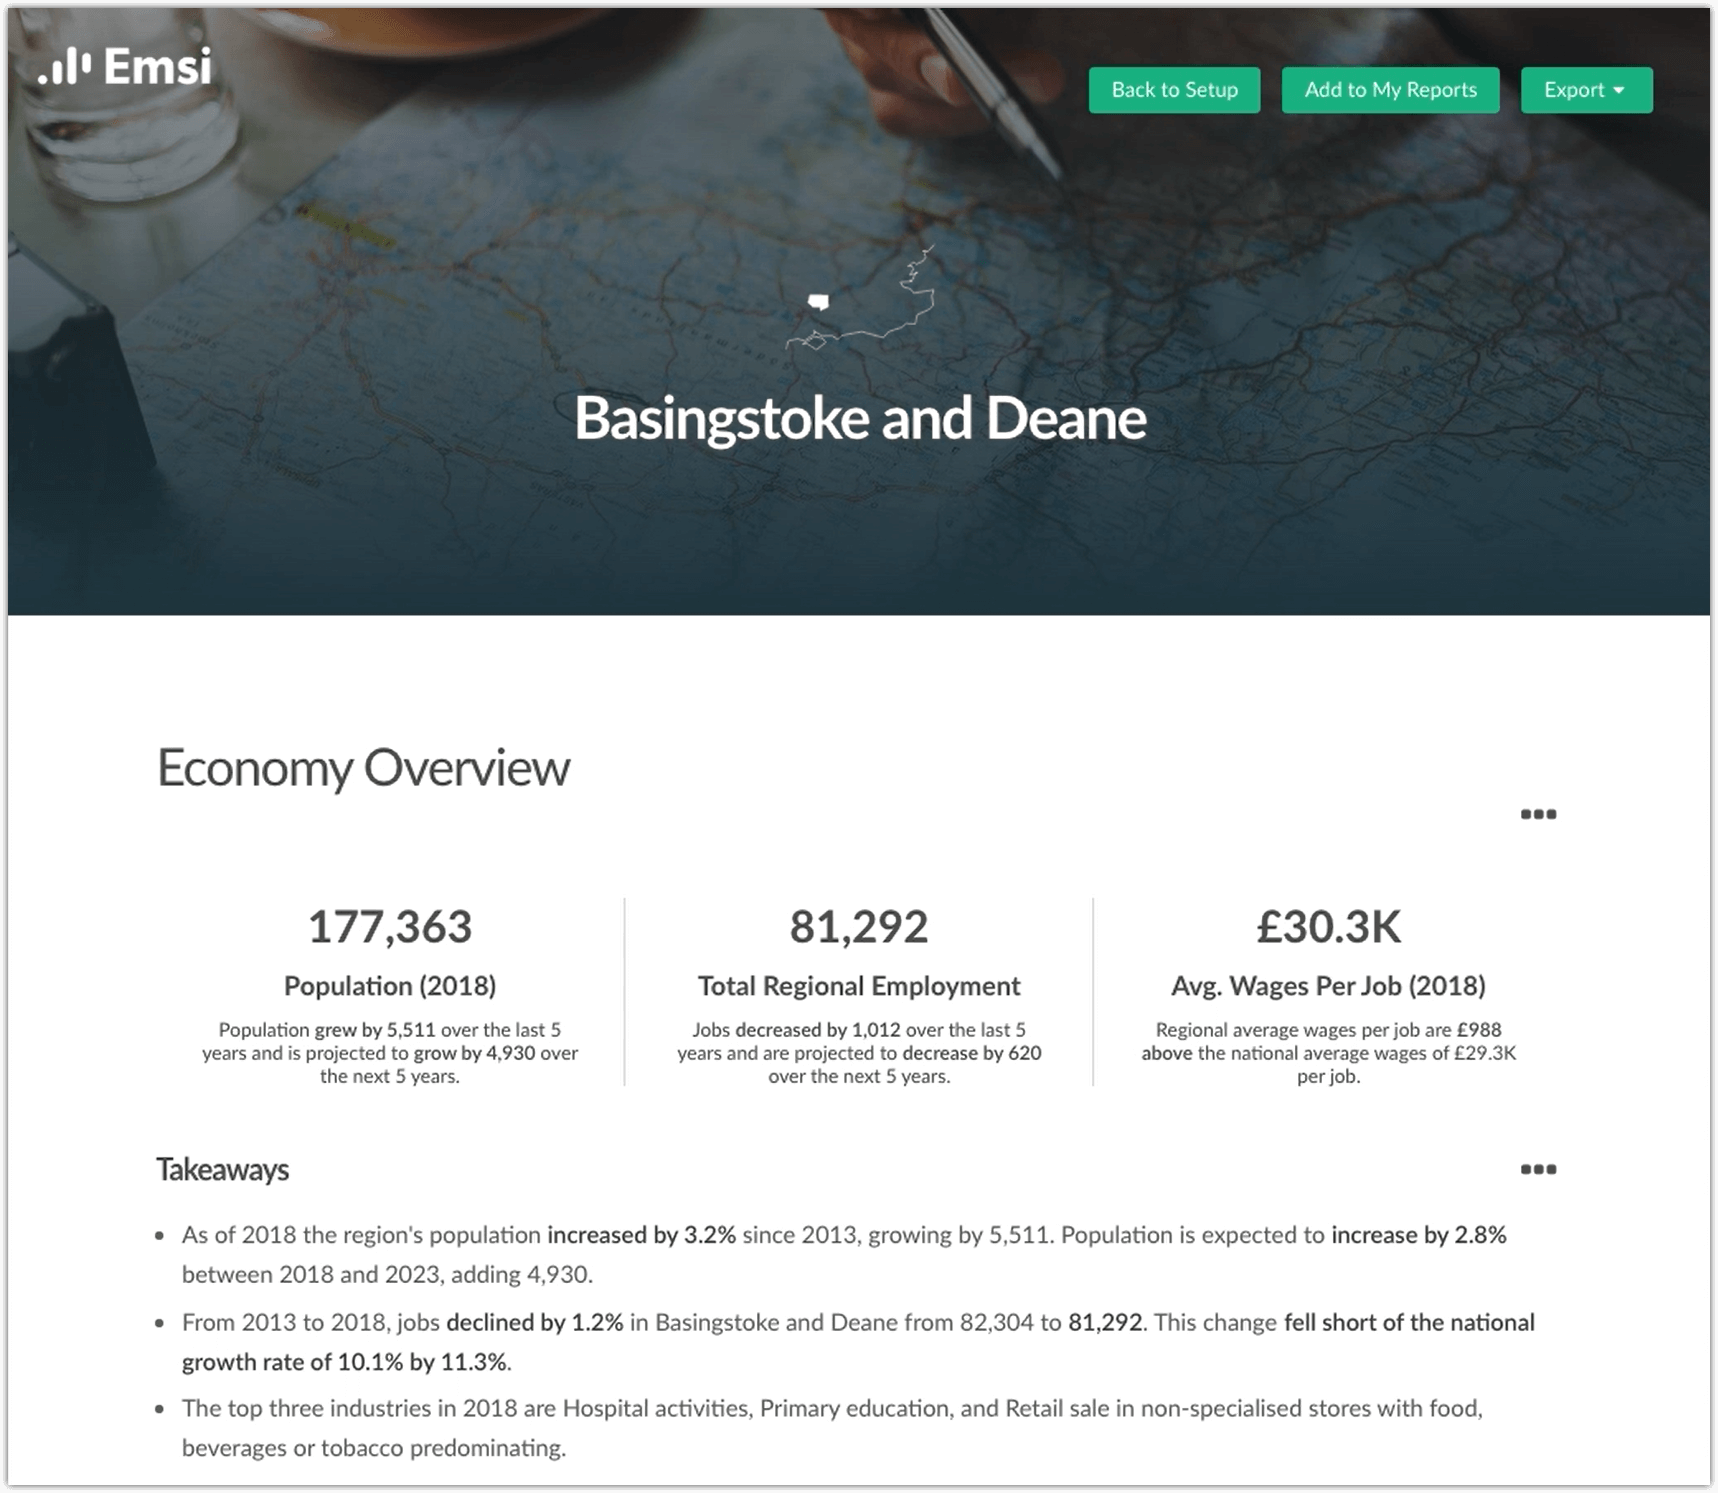 June 2019 Product Update: New Economy Overview.